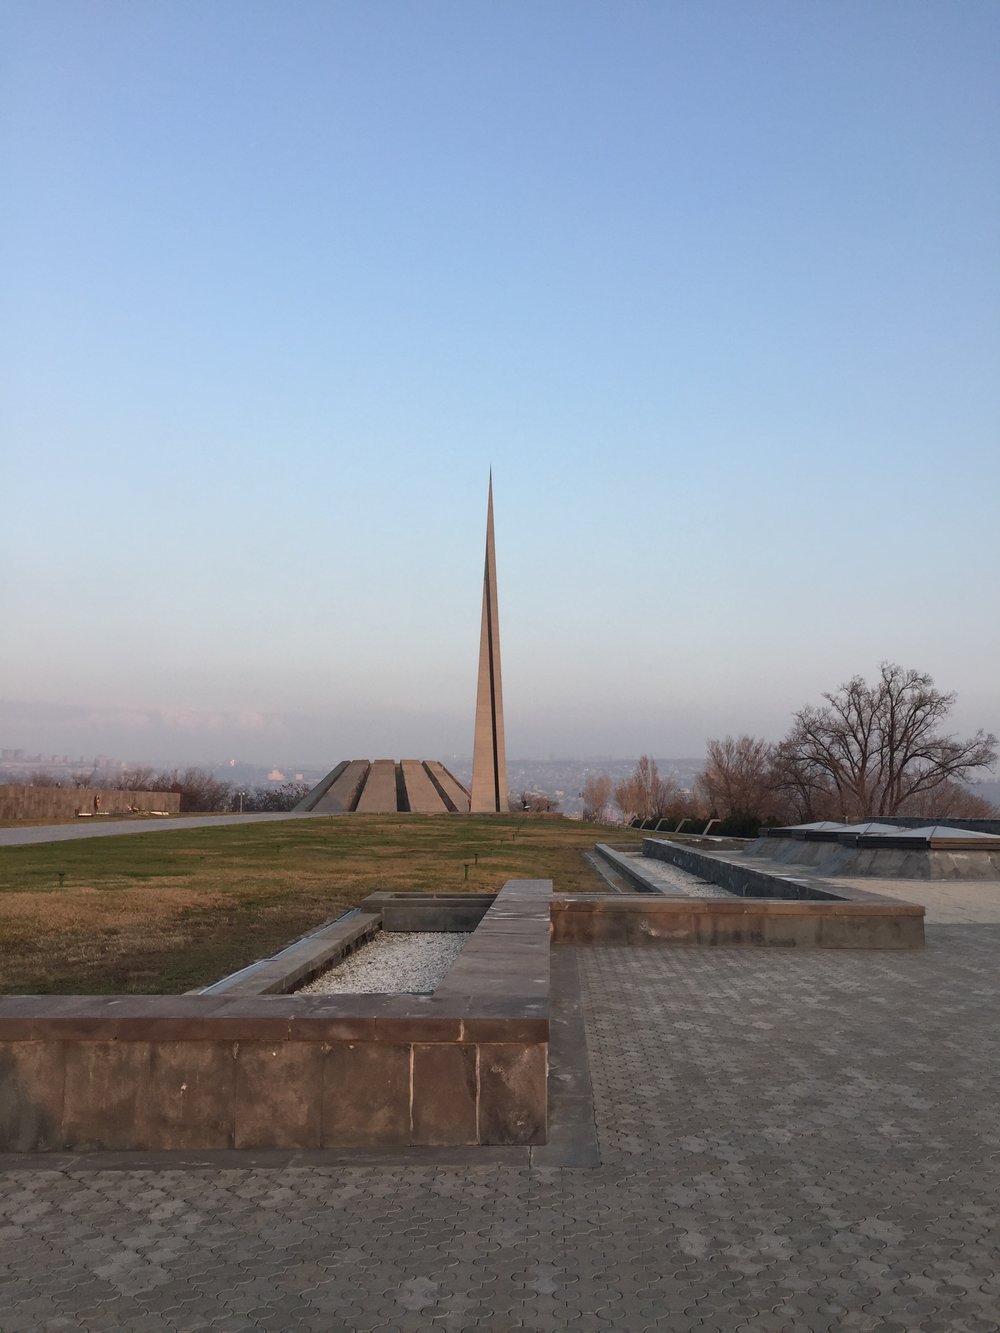 On the lef are twelve slabs are positioned in a circle, representing the twelve lost provinces in present-day Turkey. In the center of the circle, at a depth of 1.5 meters, there is an eternal flame dedicated to the 1.5 million people killed during the Armenian Genocide. This memorial is constructed in such a way that anyone who enters must bow their heads in deference to those lost.  One the right is 44-meter stele symbolizing the national rebirth of Armenians.